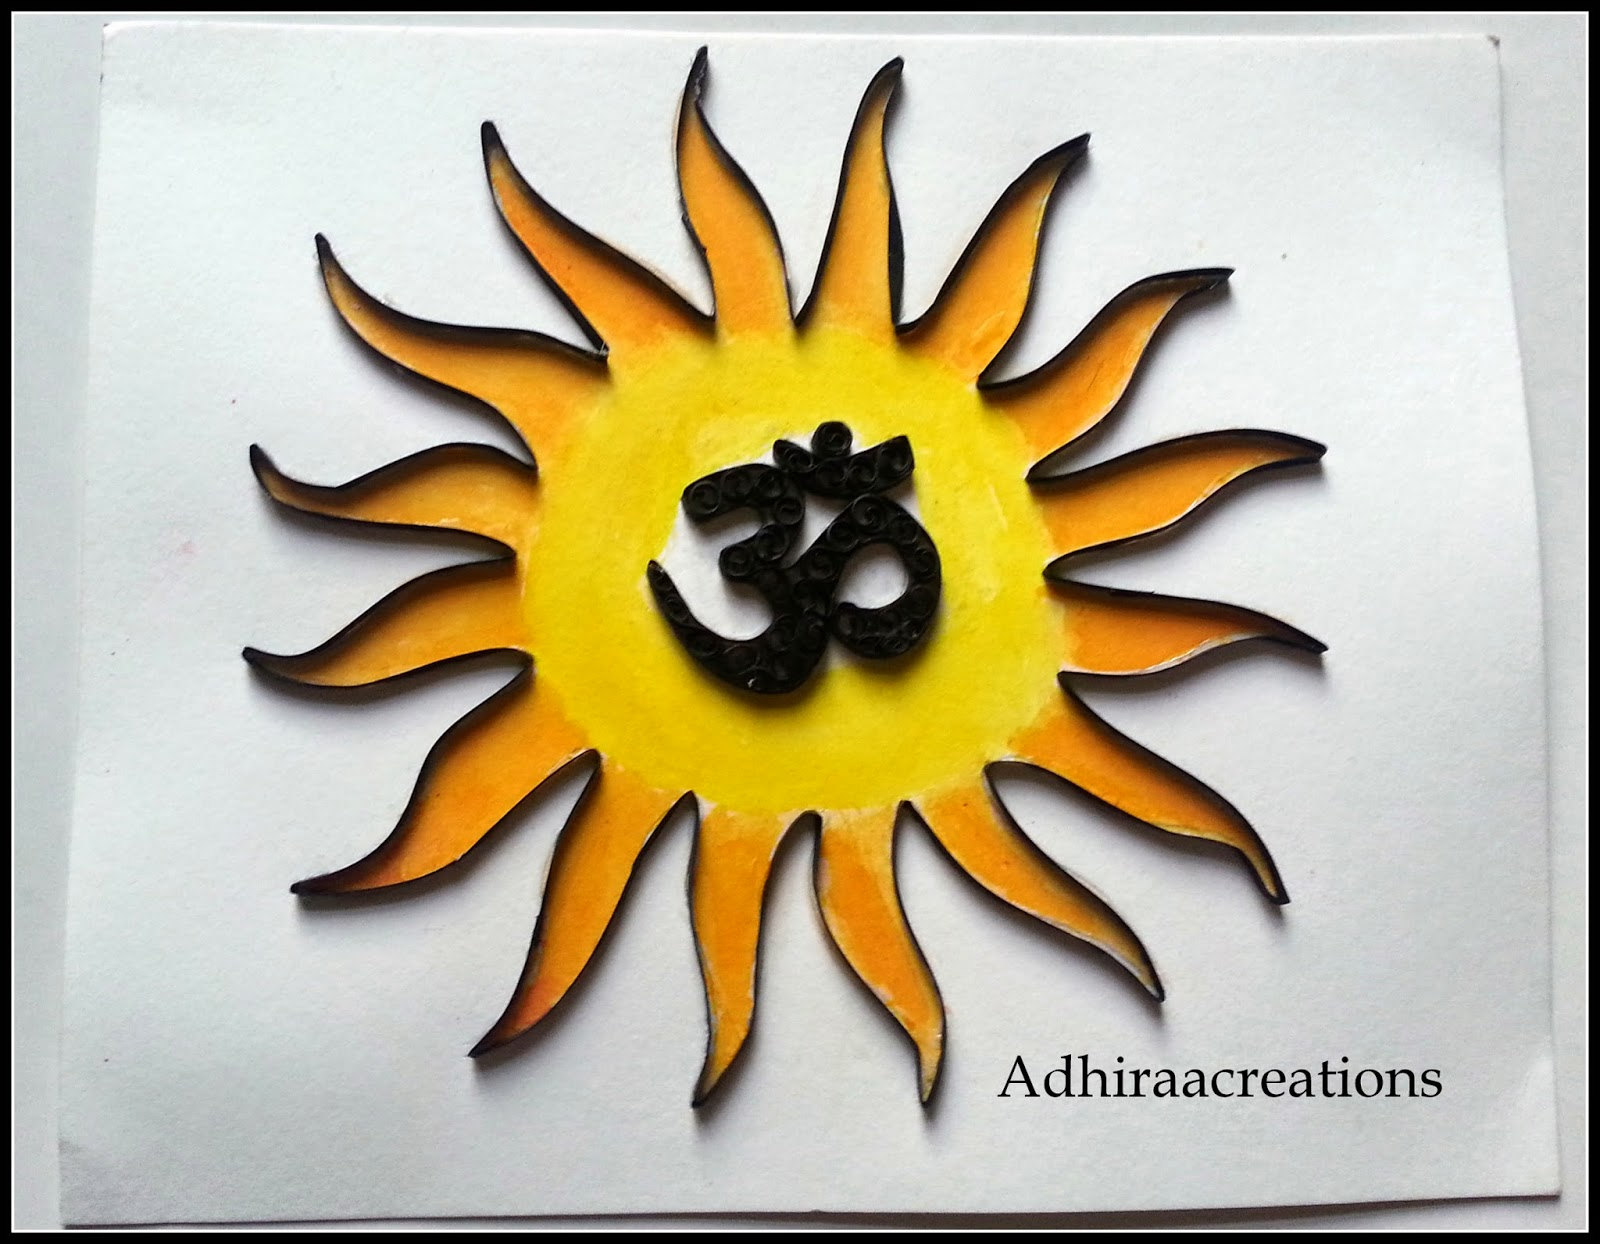 Adhiraacreations: Quilled Om